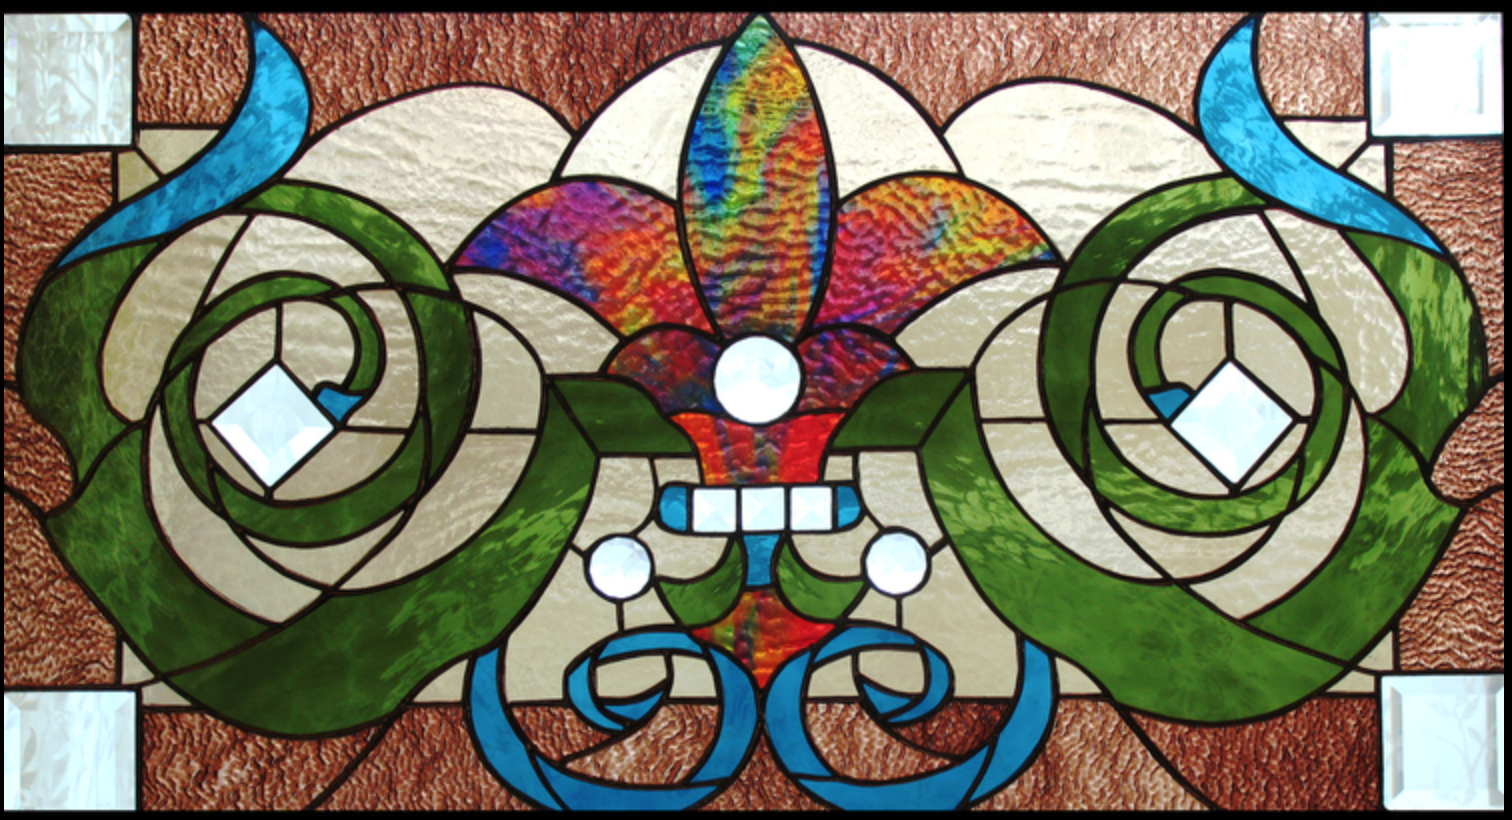 Daniel McKenna - http://glassoriginals.netOffering glass familiar to a wide audience, we present the purity of color with stained glass. In the copper foil technique, we create contemporary art in a timeless tradition that enhances any home.